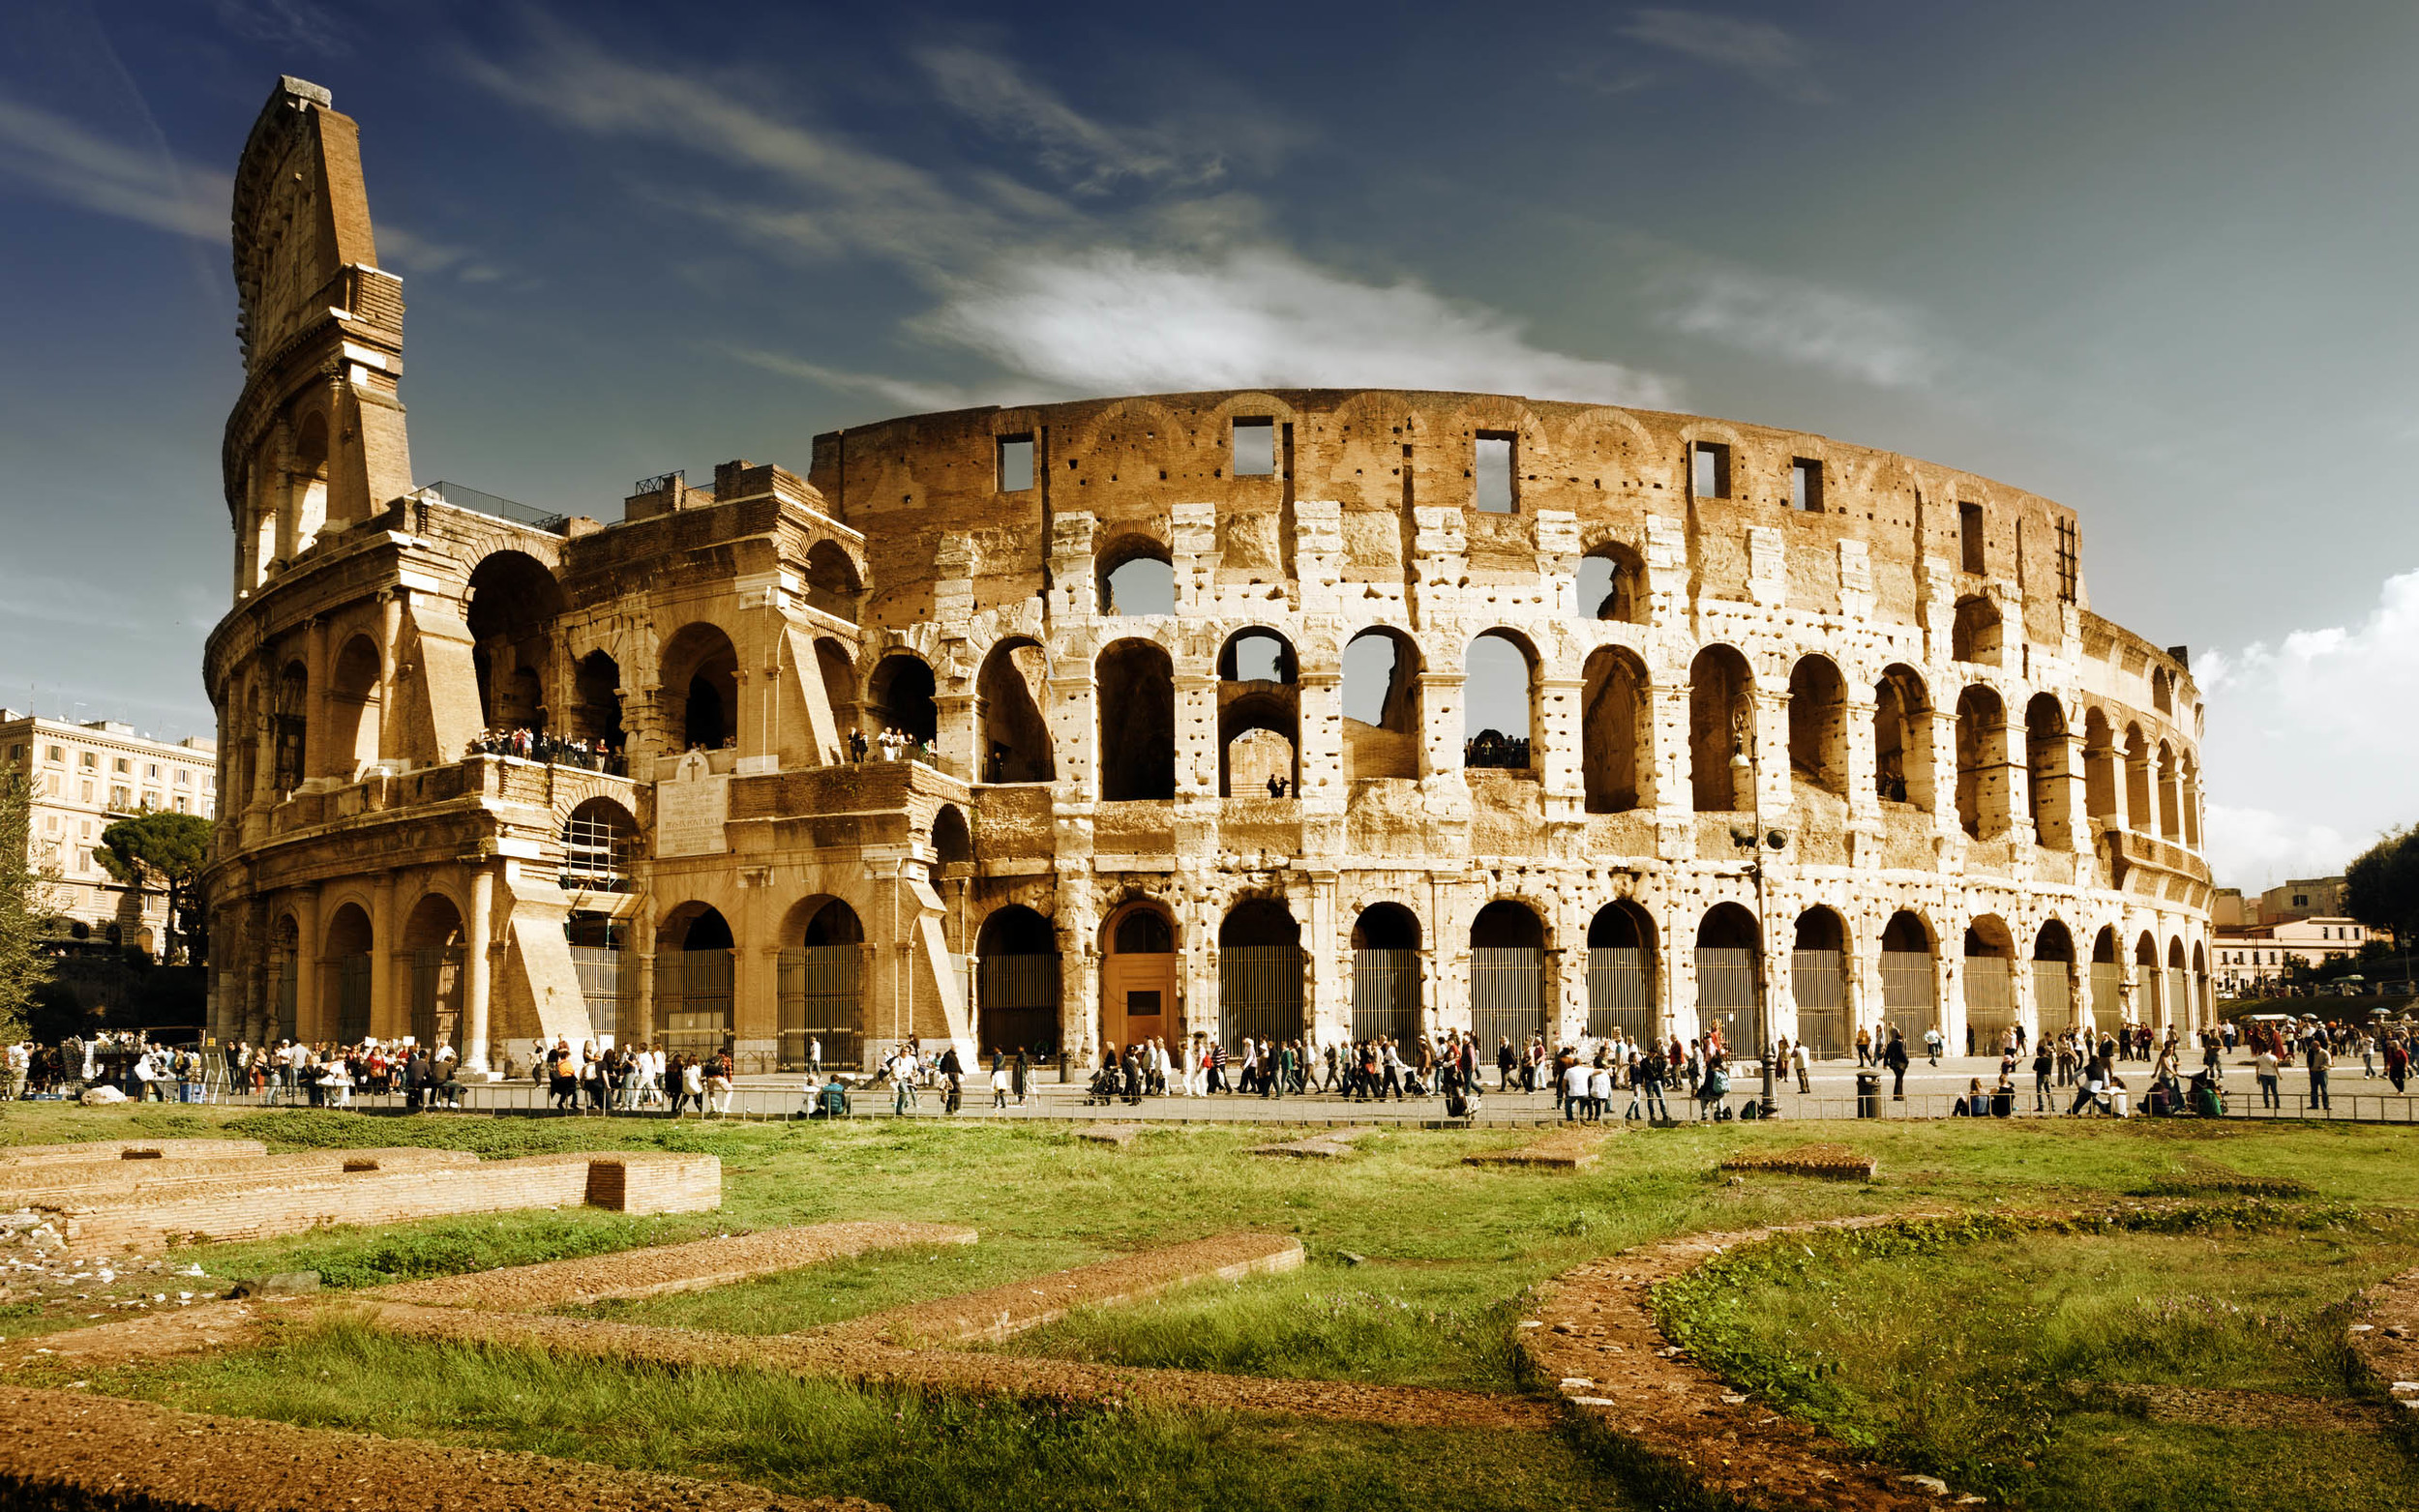 No, this one isn't mine, but you can be assured I will have zillions of my own pics of the Colosseum in due time.